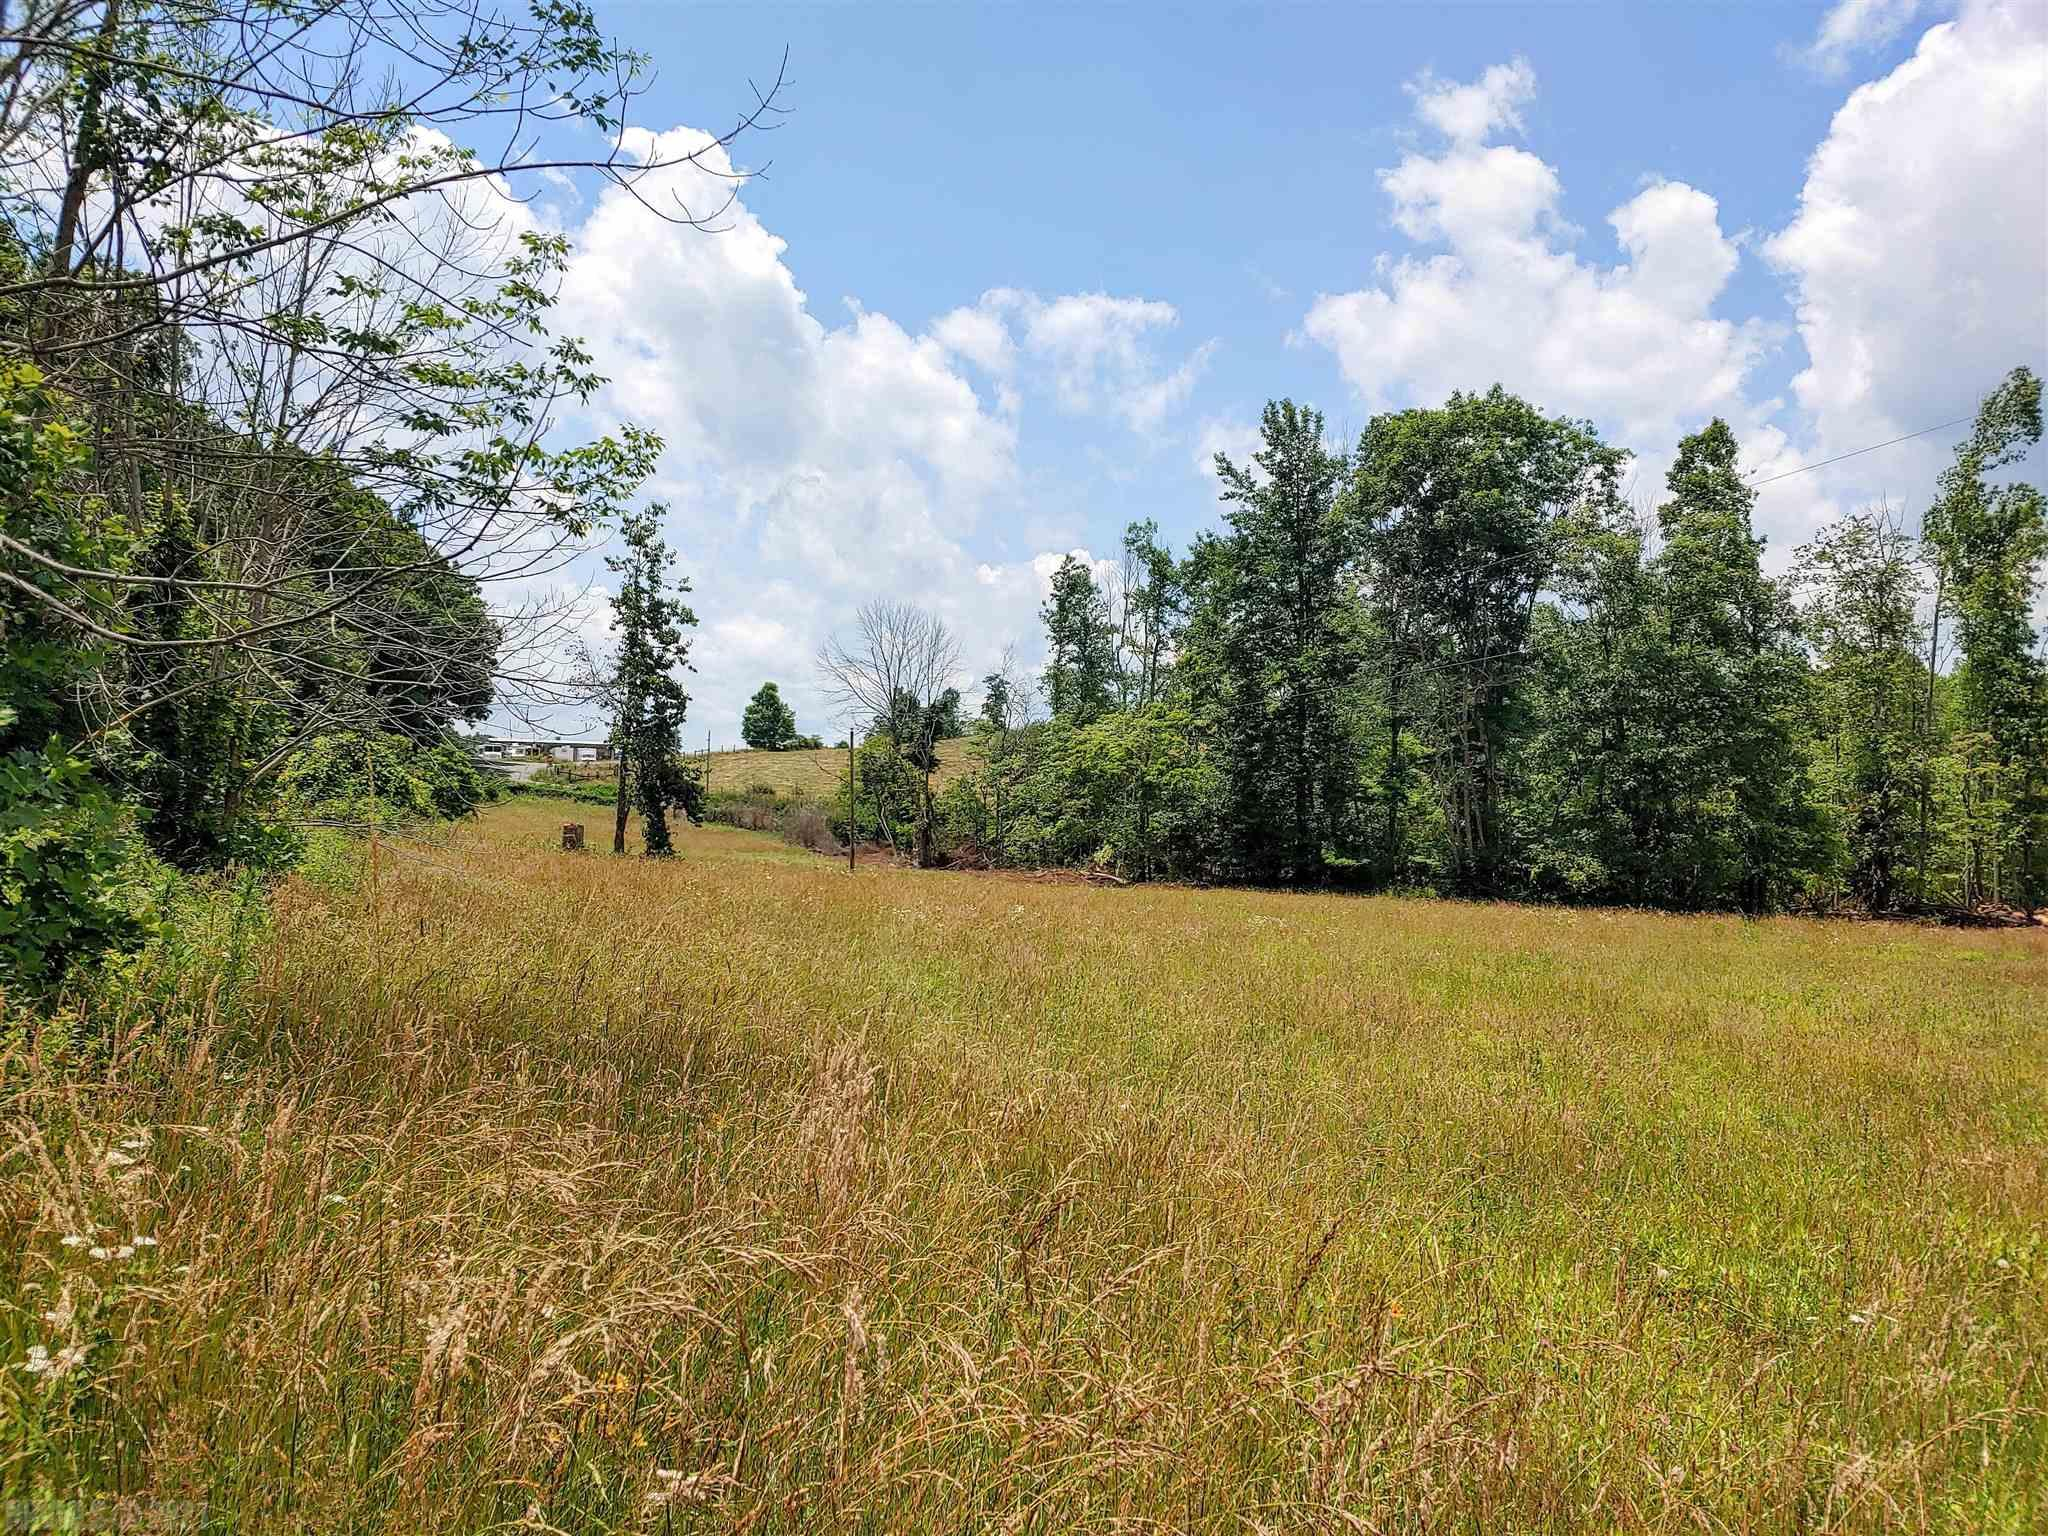 Beautiful property to build your home!  11.2 acres of rolling pasture with patches of wooded areas.  Property has roadways already created from timber retrieval.   Mature poplars were harvested recently and has now made for excellent home sites.  Unrestricted land!  Electric utilities are close by and accessible, good amount of state maintained road frontage.  Close to the Blue Ridge Parkway, Mabry Mill and Meadows of Dan.  Only 20 minutes to the Town of Floyd!